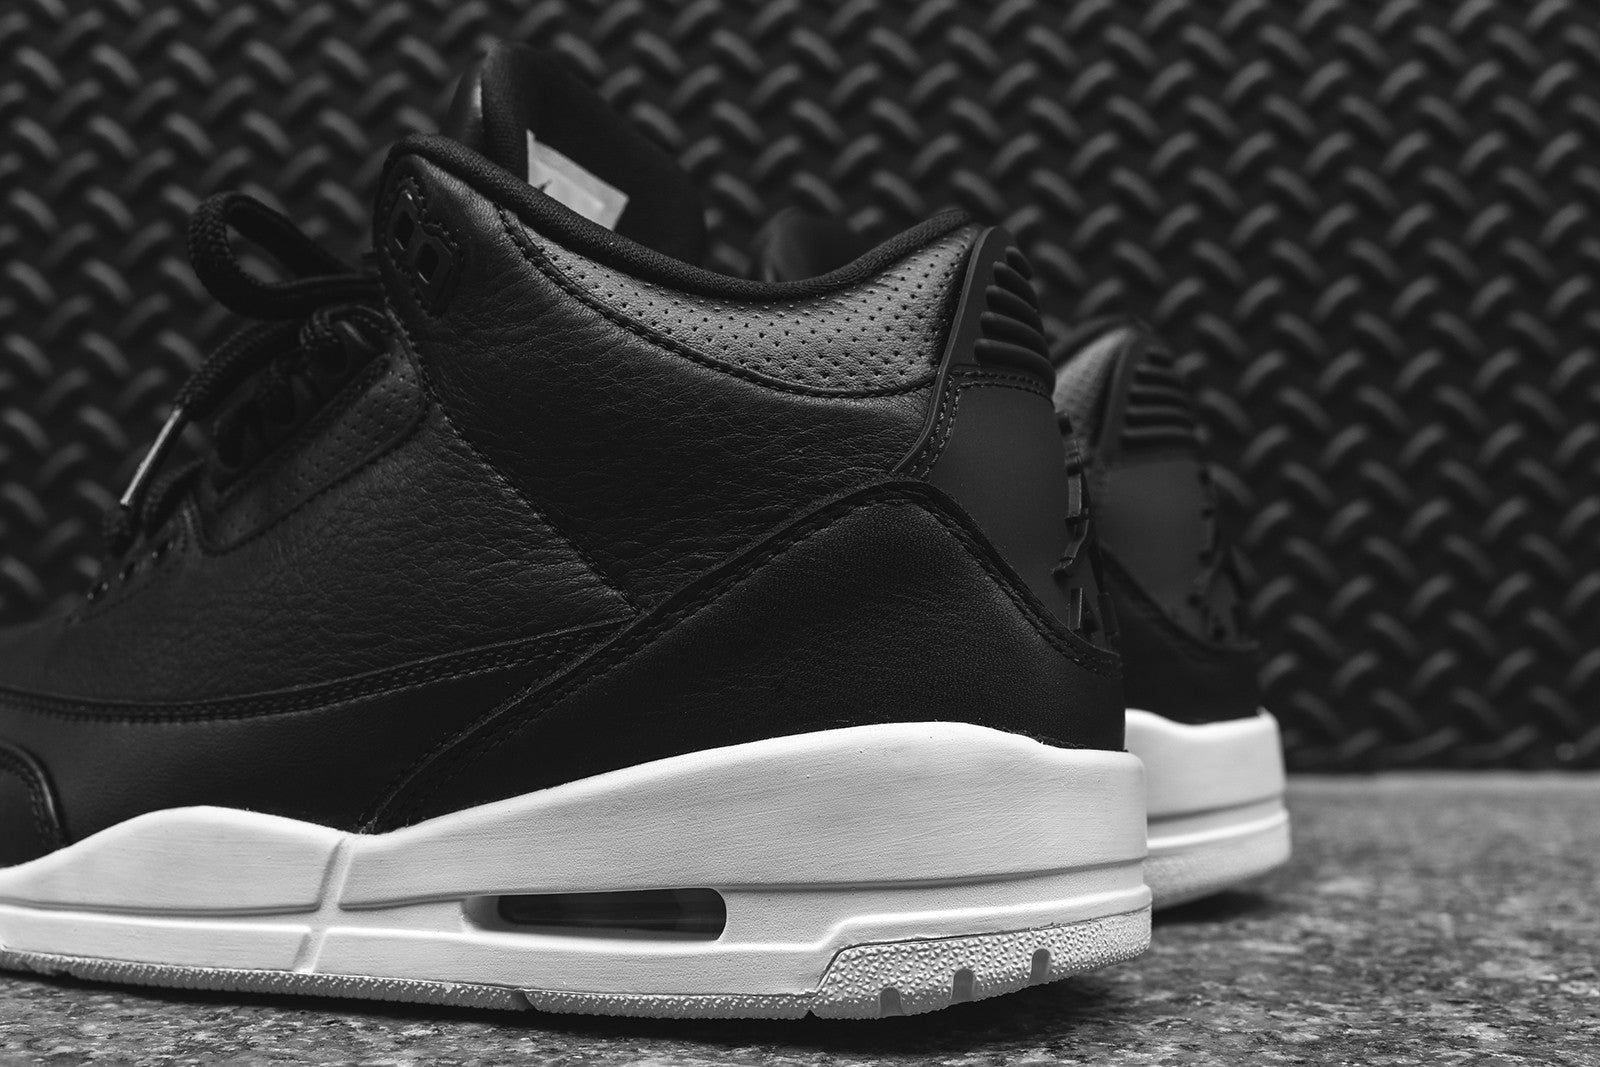 Nike Air Jordan III Retro - Black / White